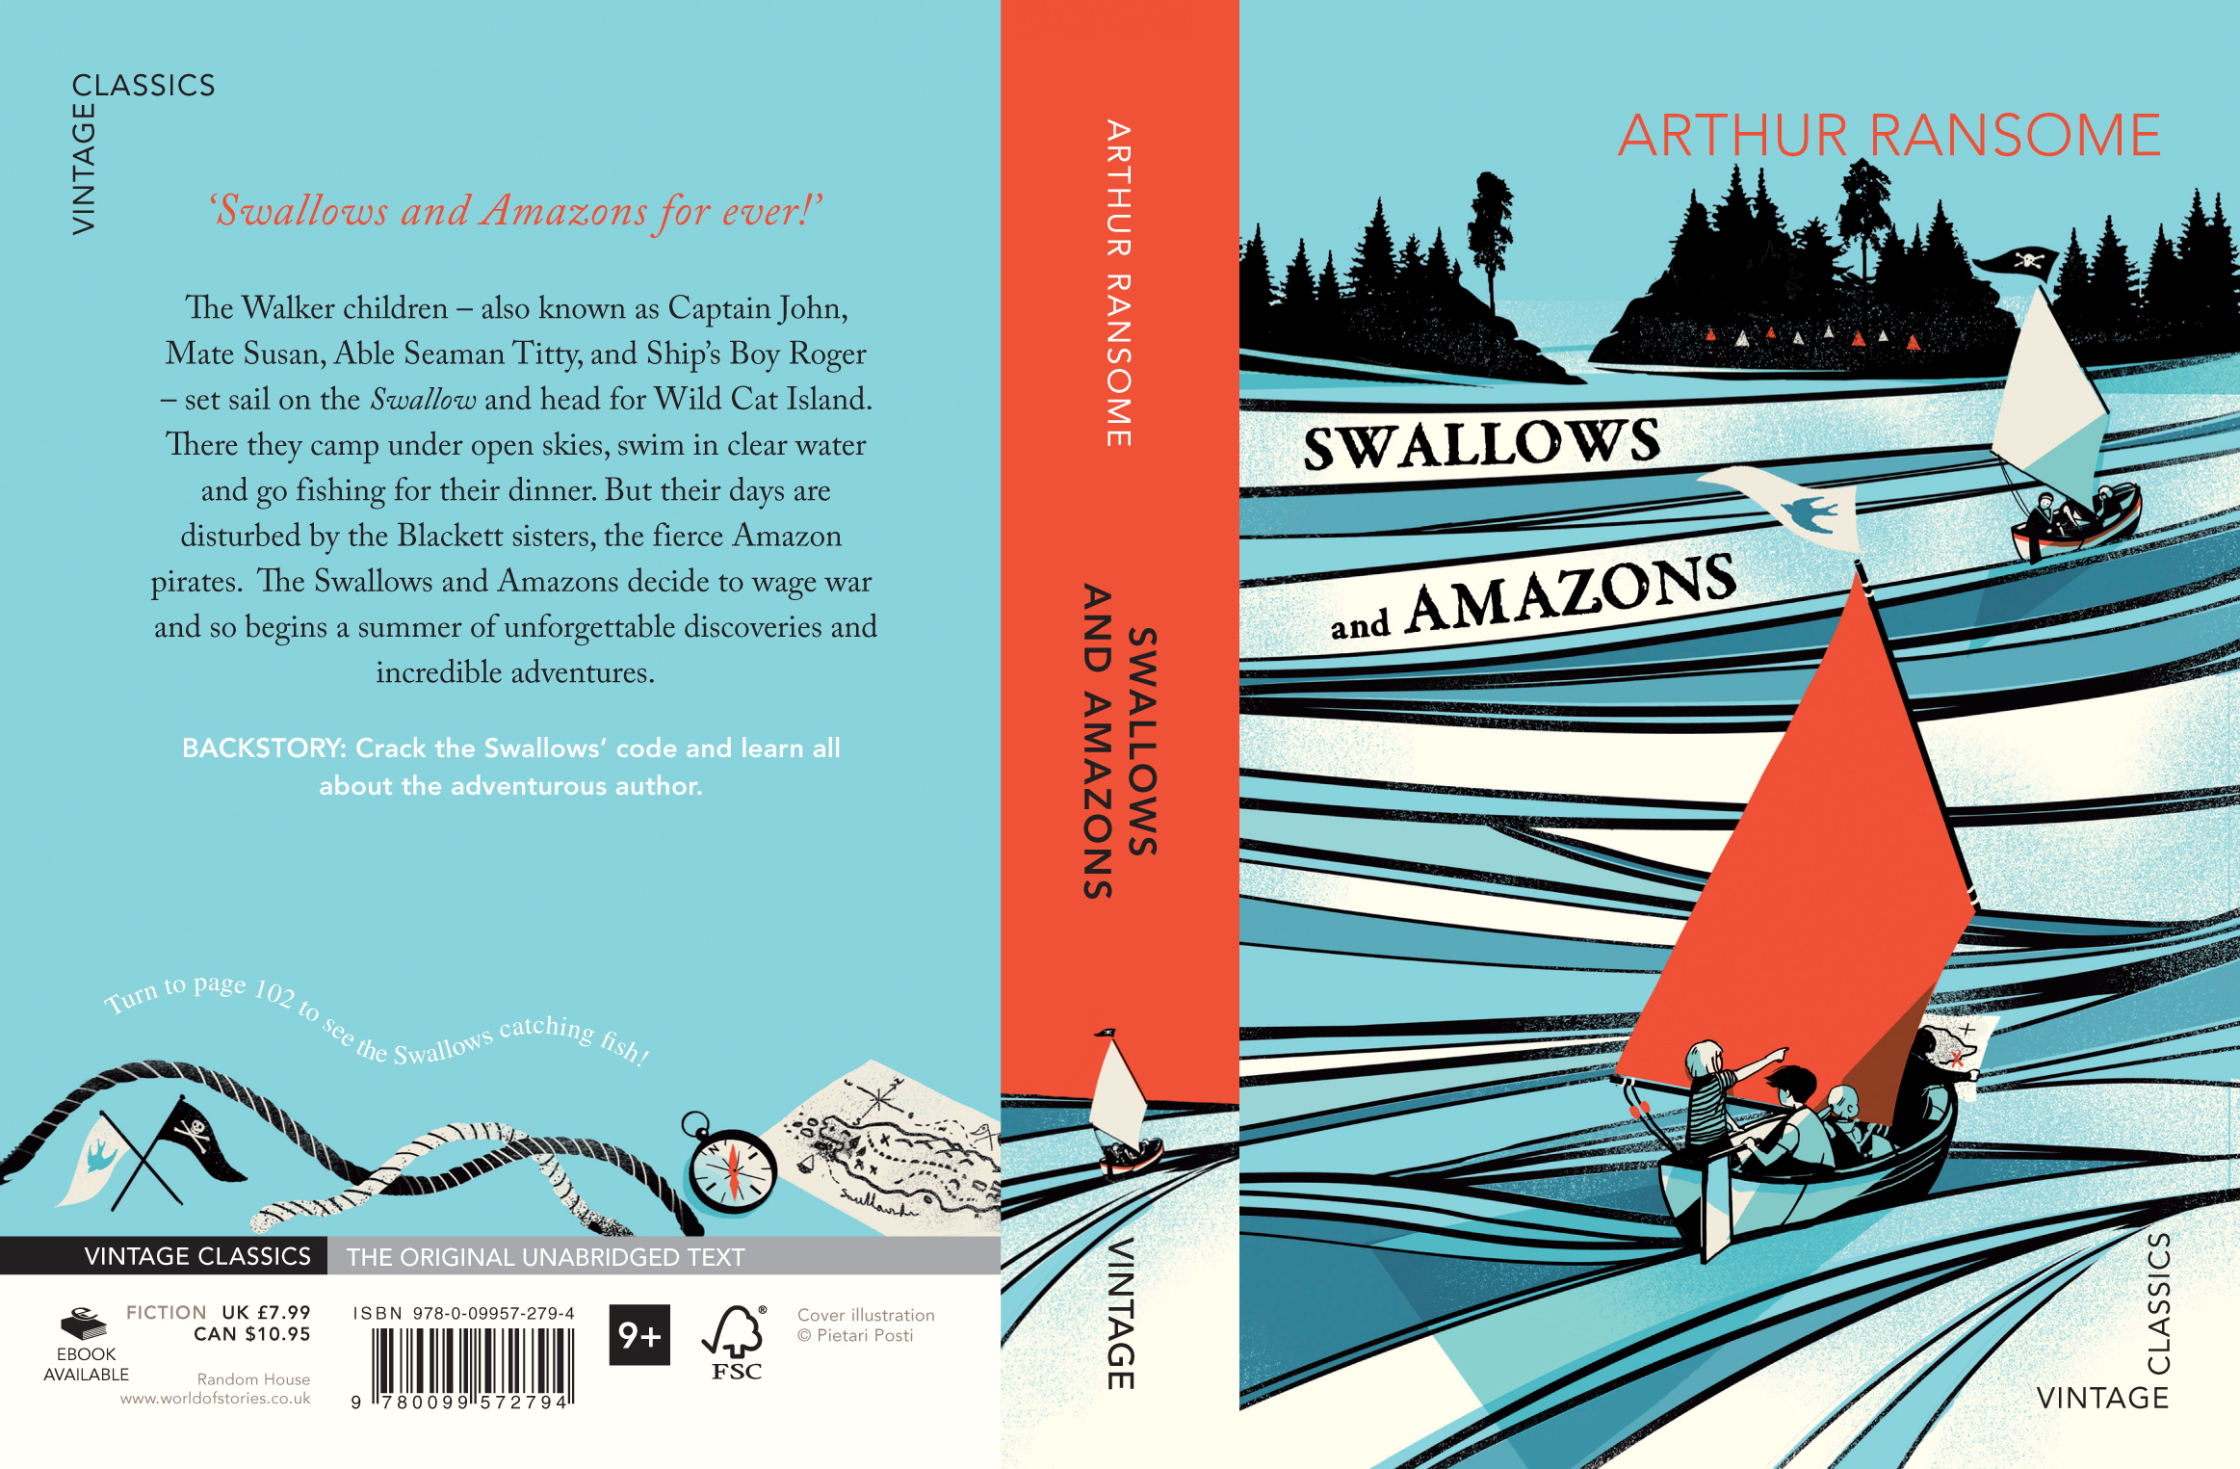 Arthur Ransome - Swallows And Amazons Cover